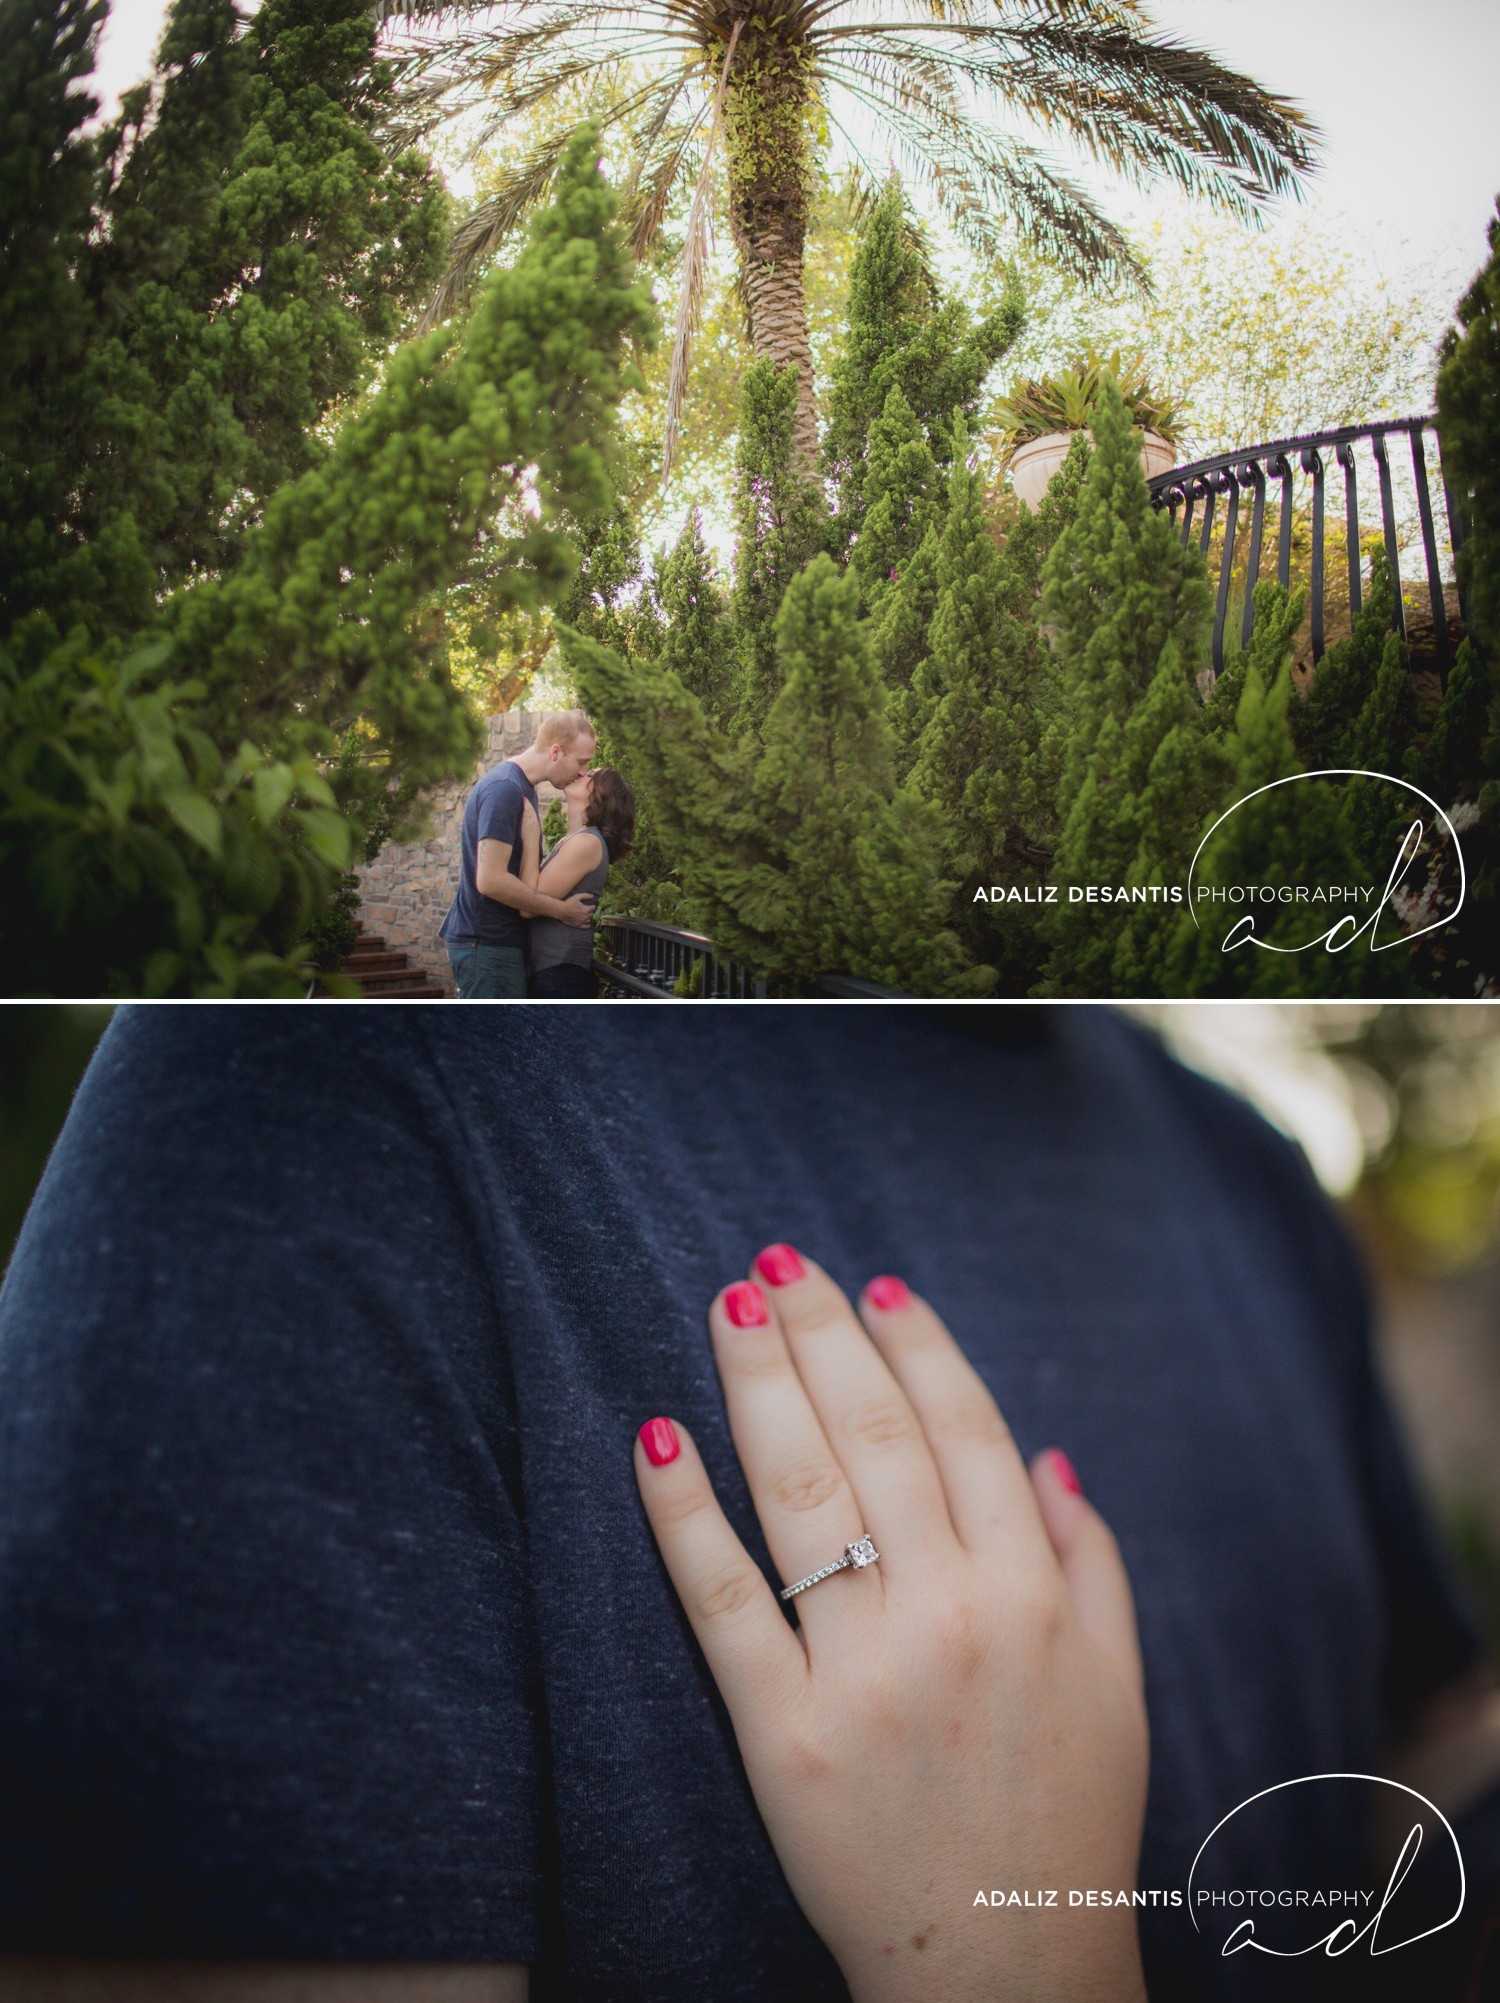 parkland golf and country club engagement session fort lauderdale south flrida 1.jpg